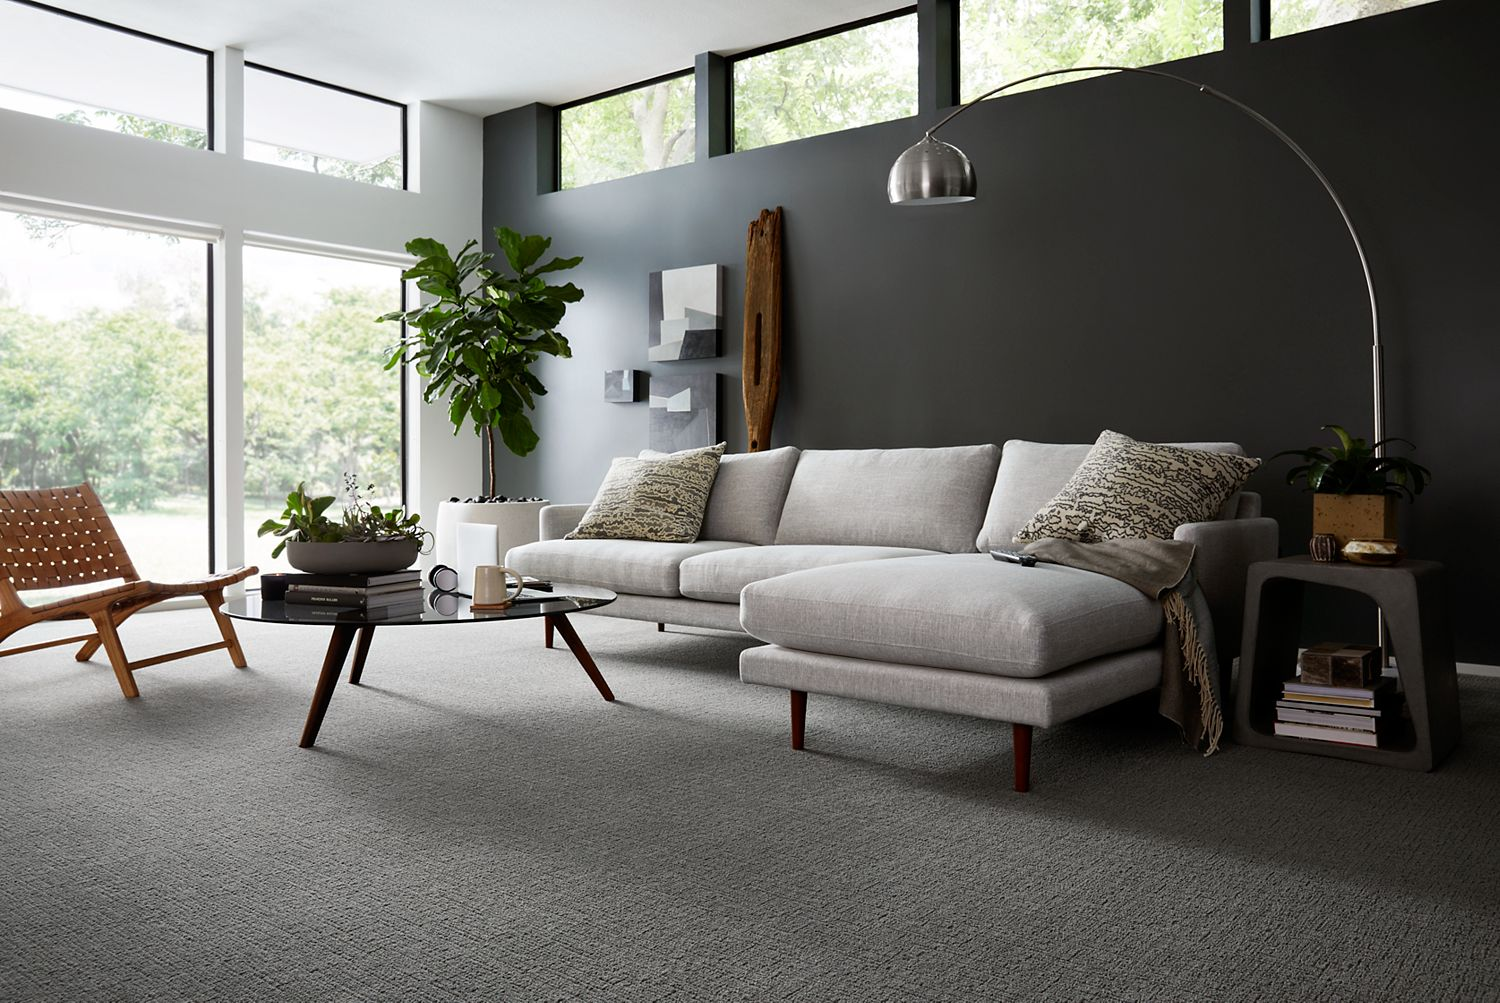 Living room with carpeting